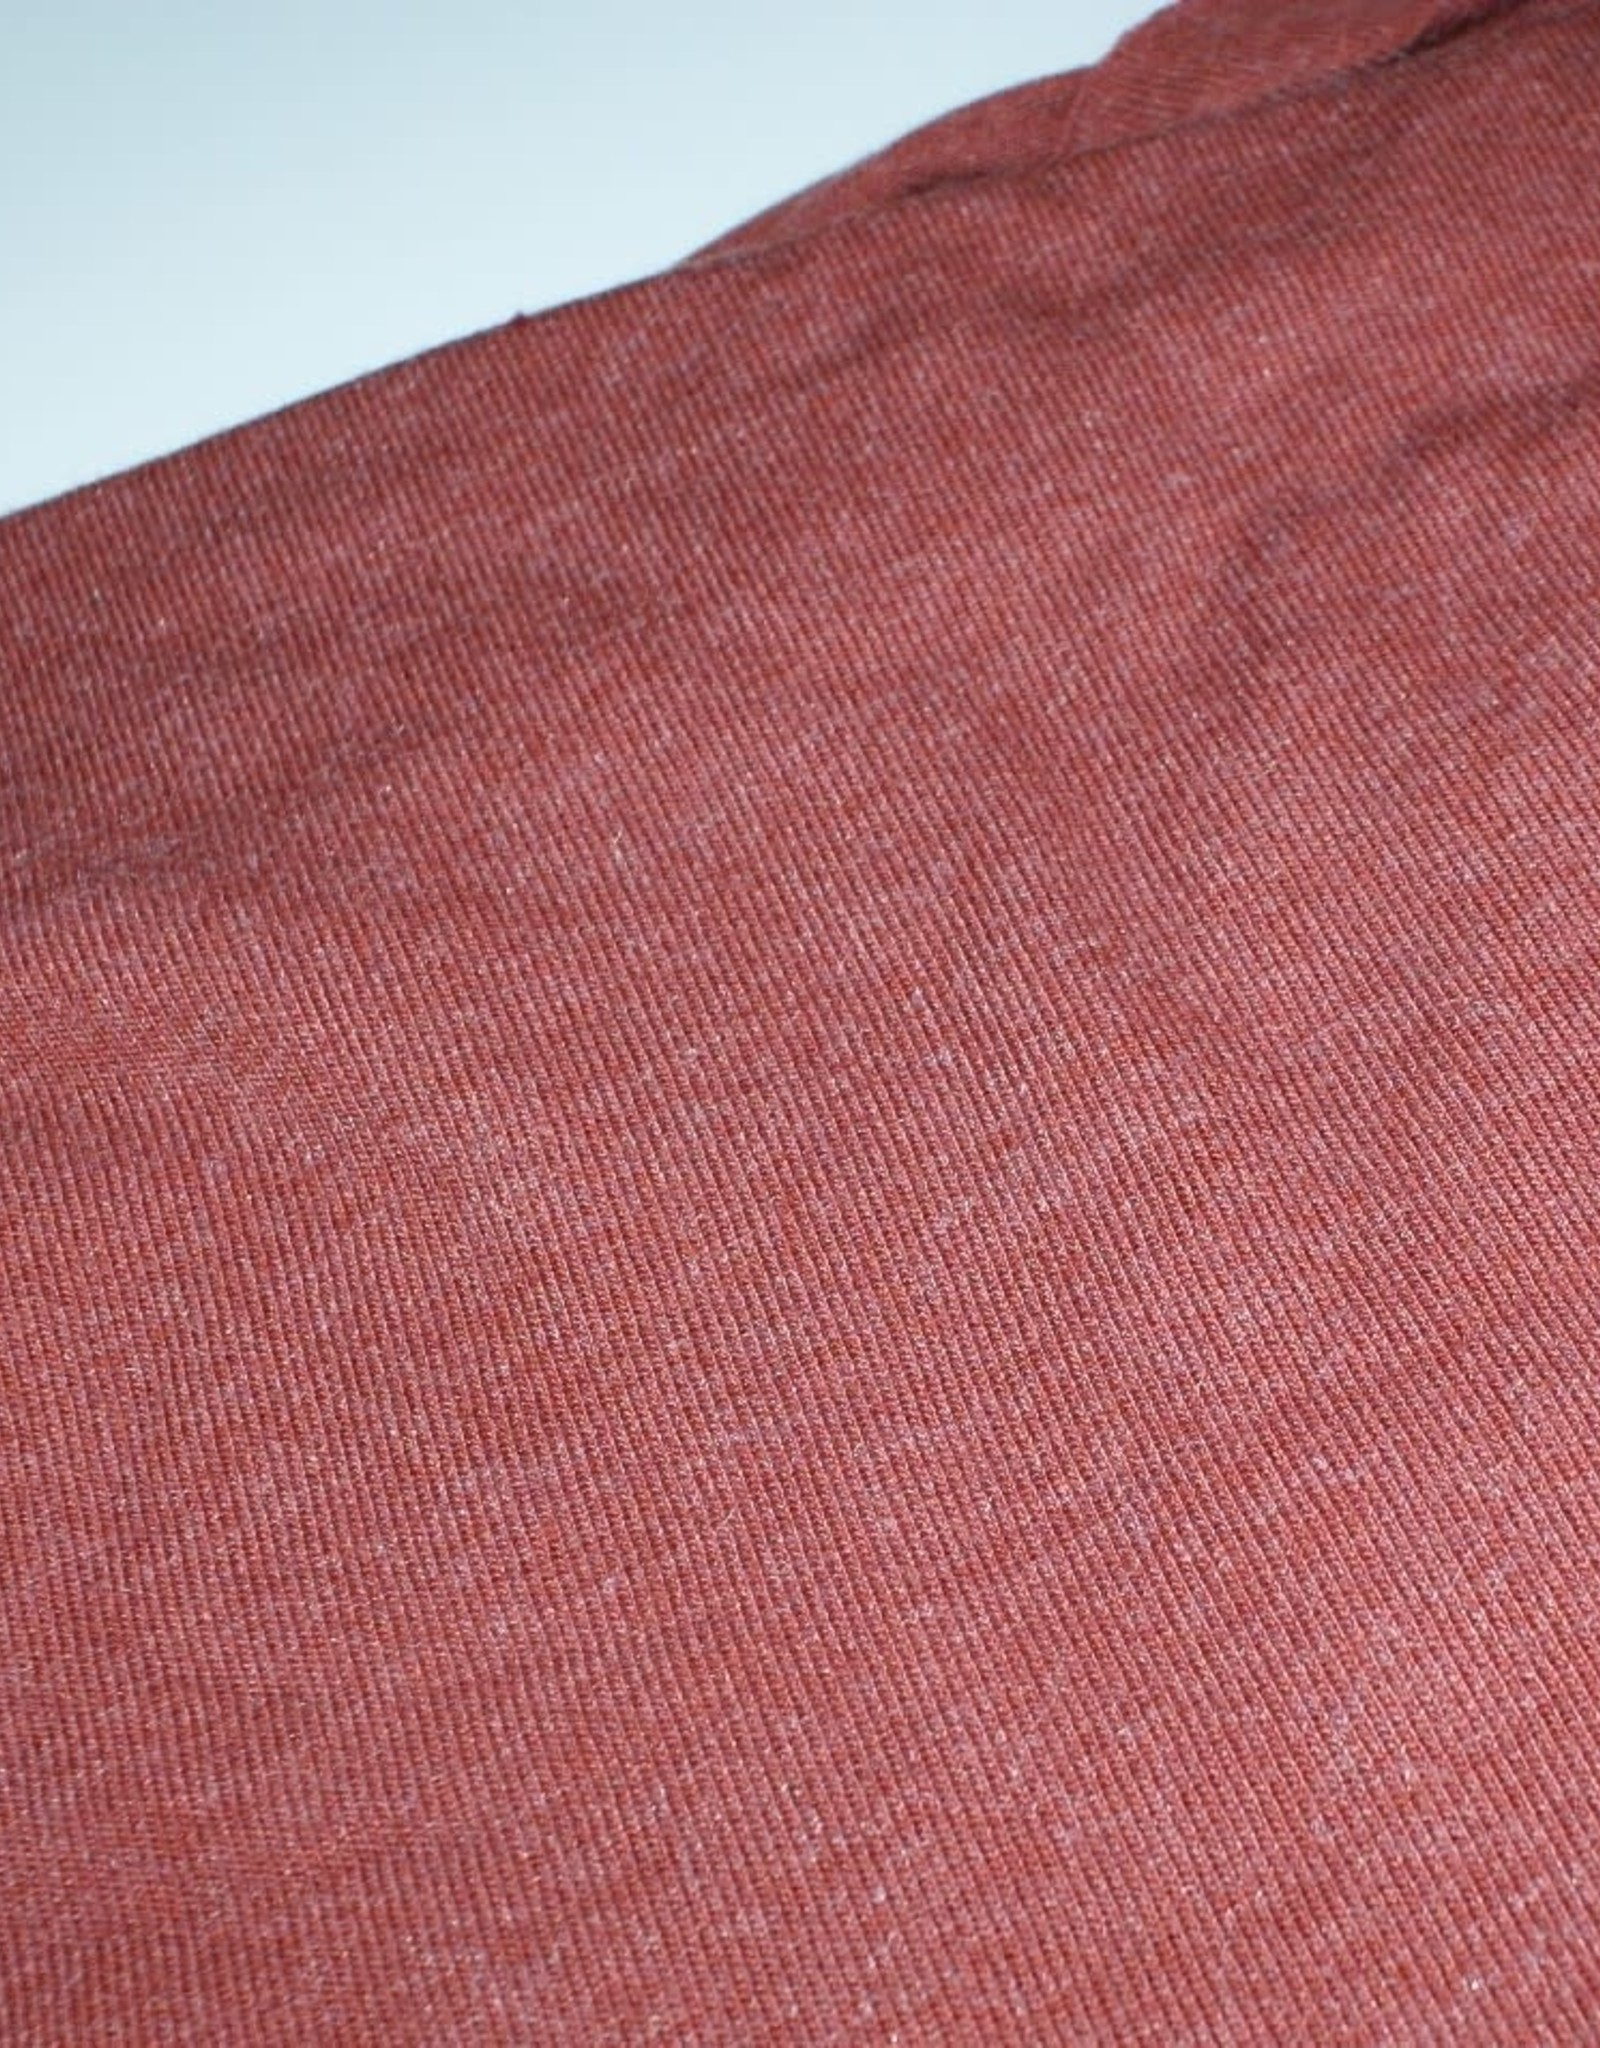 Editex knit roest COUPON 1.20m